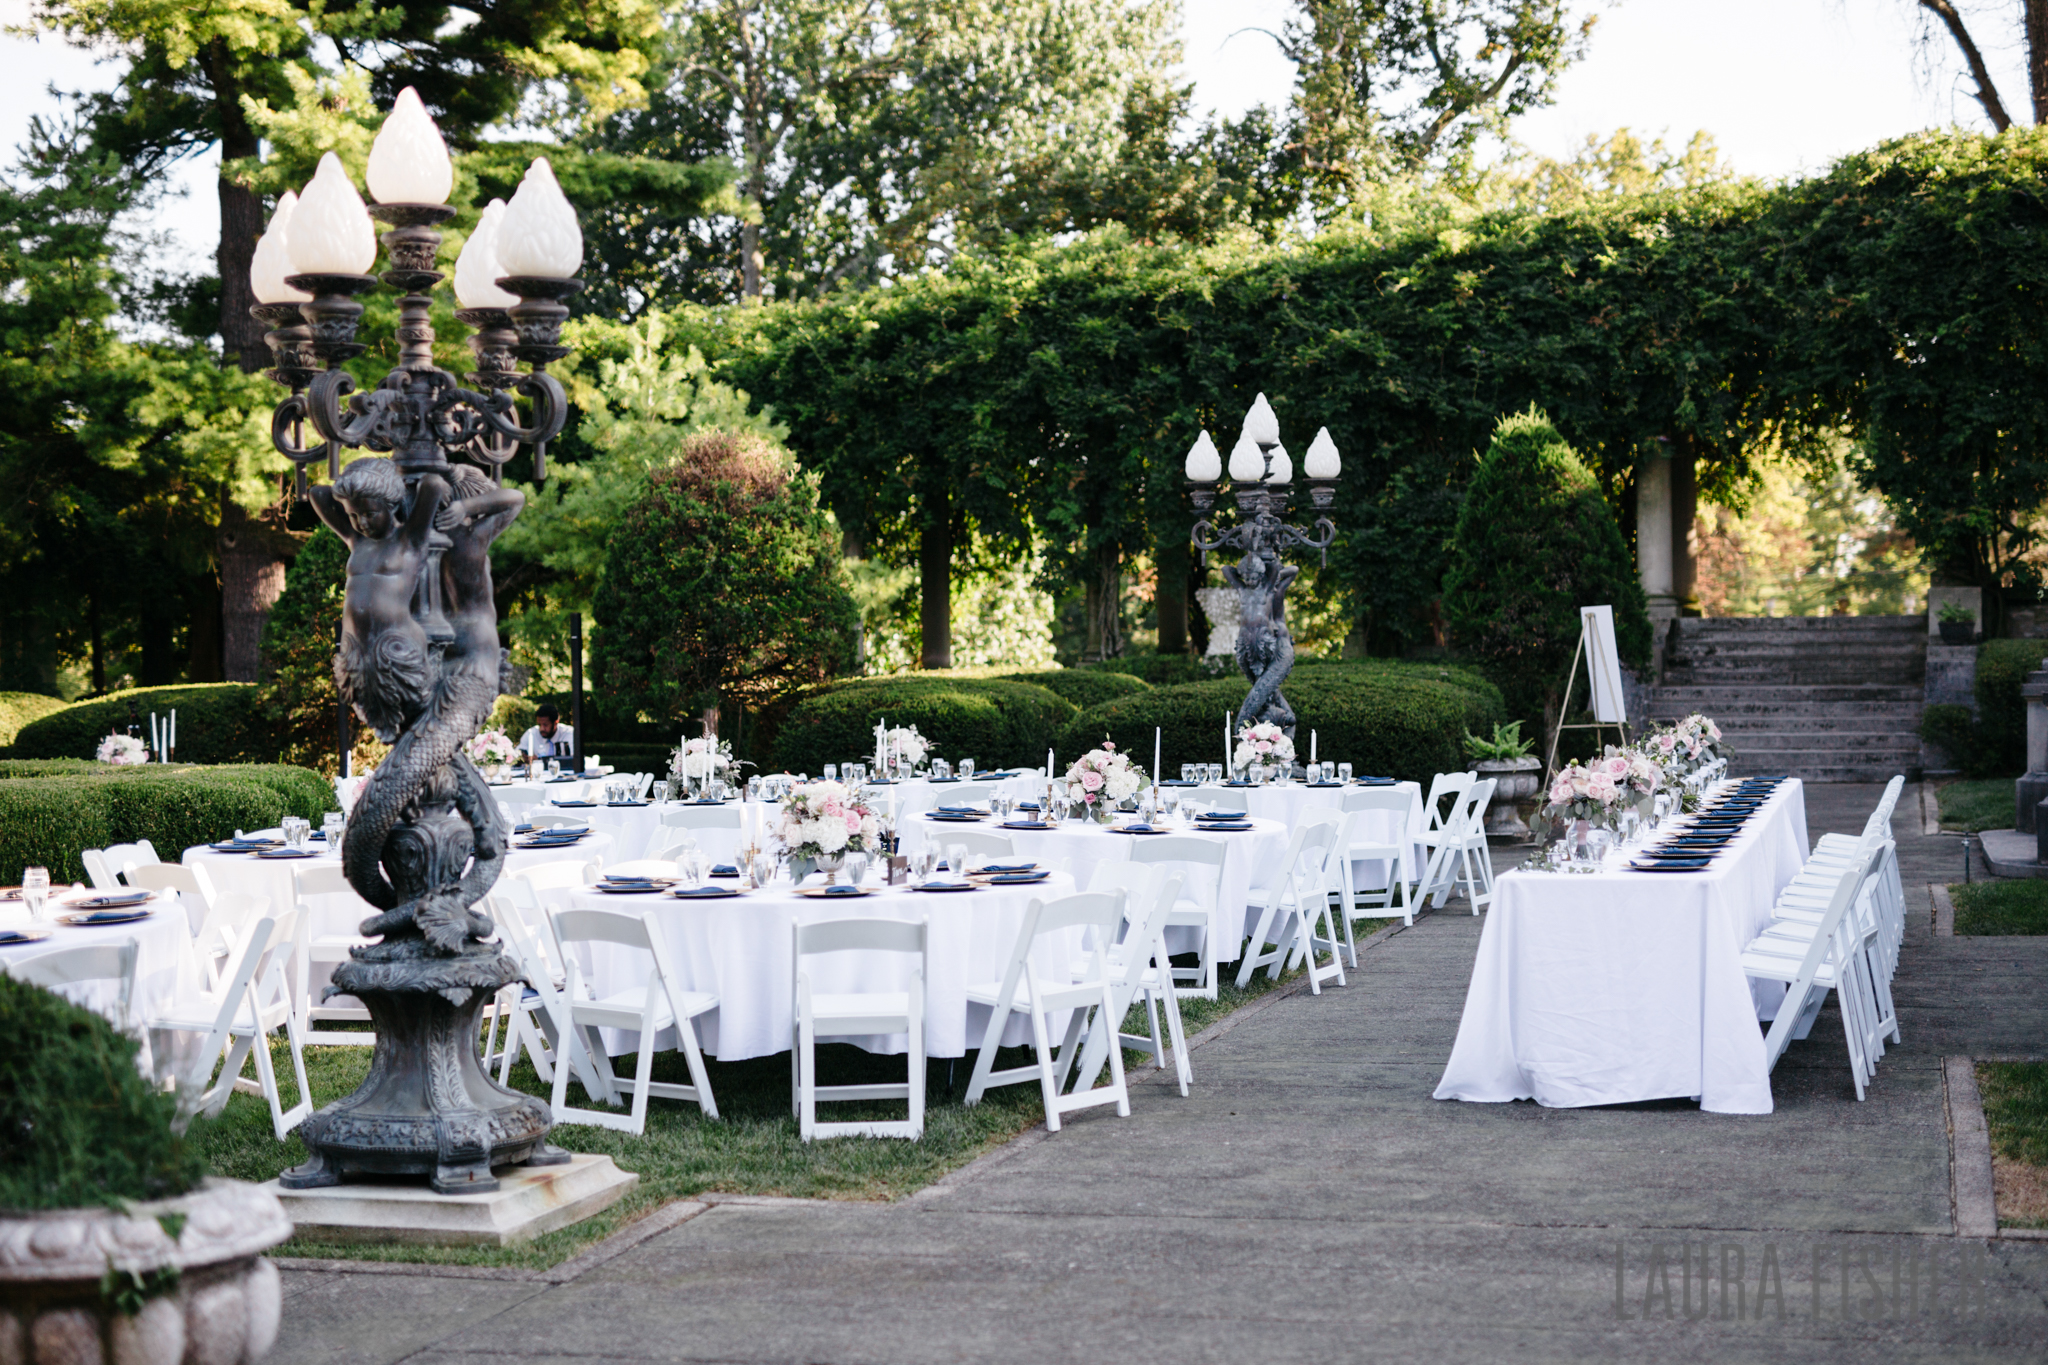 laurel-court-mansion-wedding-cincinnati-0118.jpg